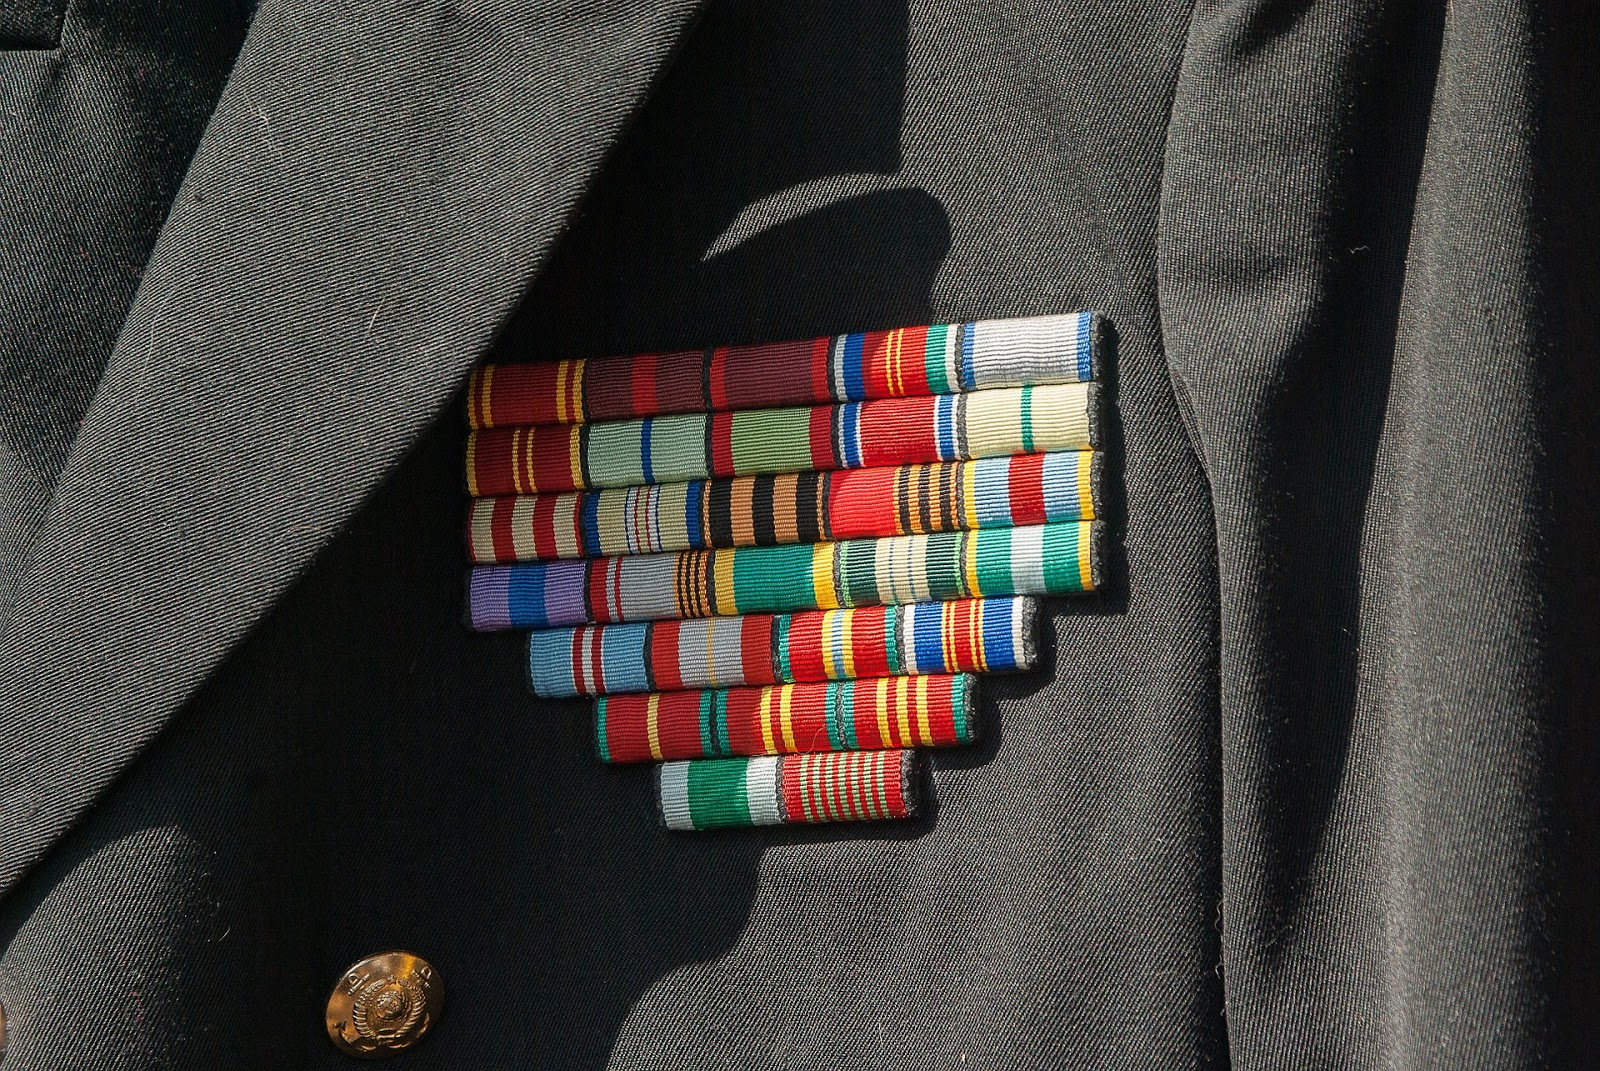 close up of army uniform with several medals and ribbons for blog post about stolen valor